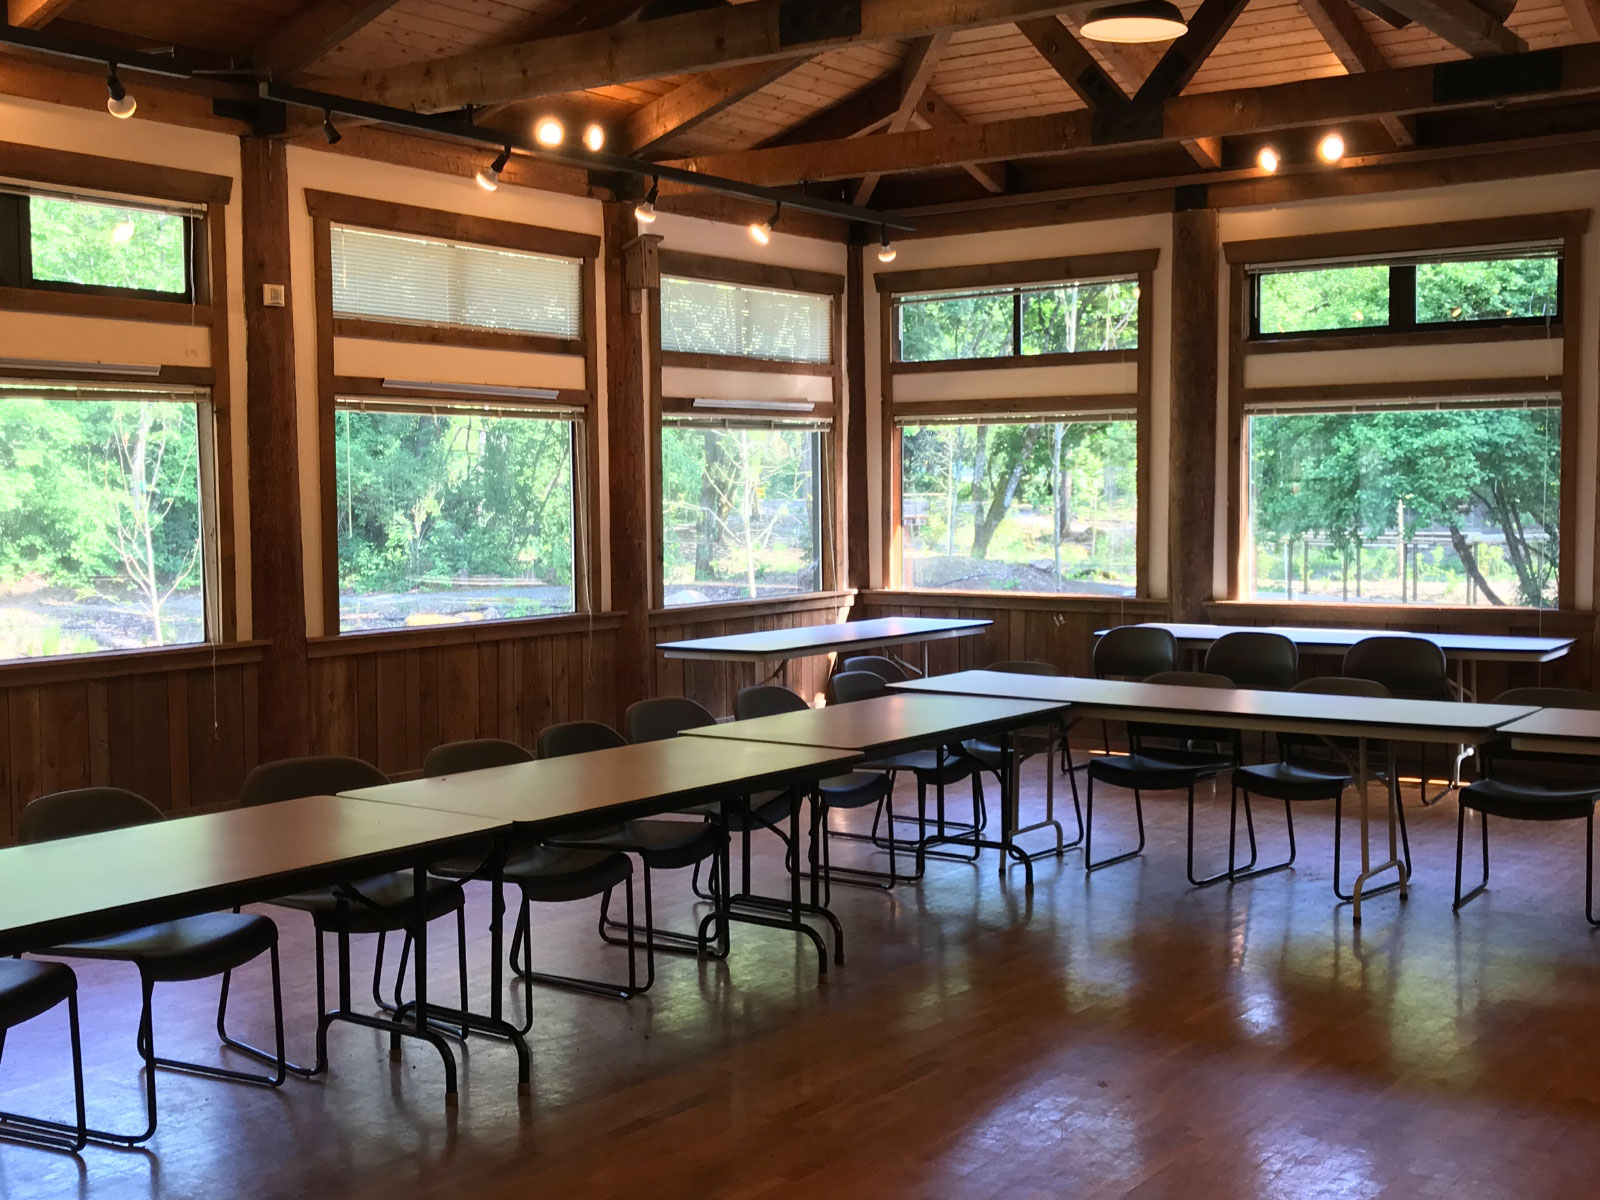 The inside of the Environmental Learning Center's Lakeside Hall, with rows of conference tables chairs